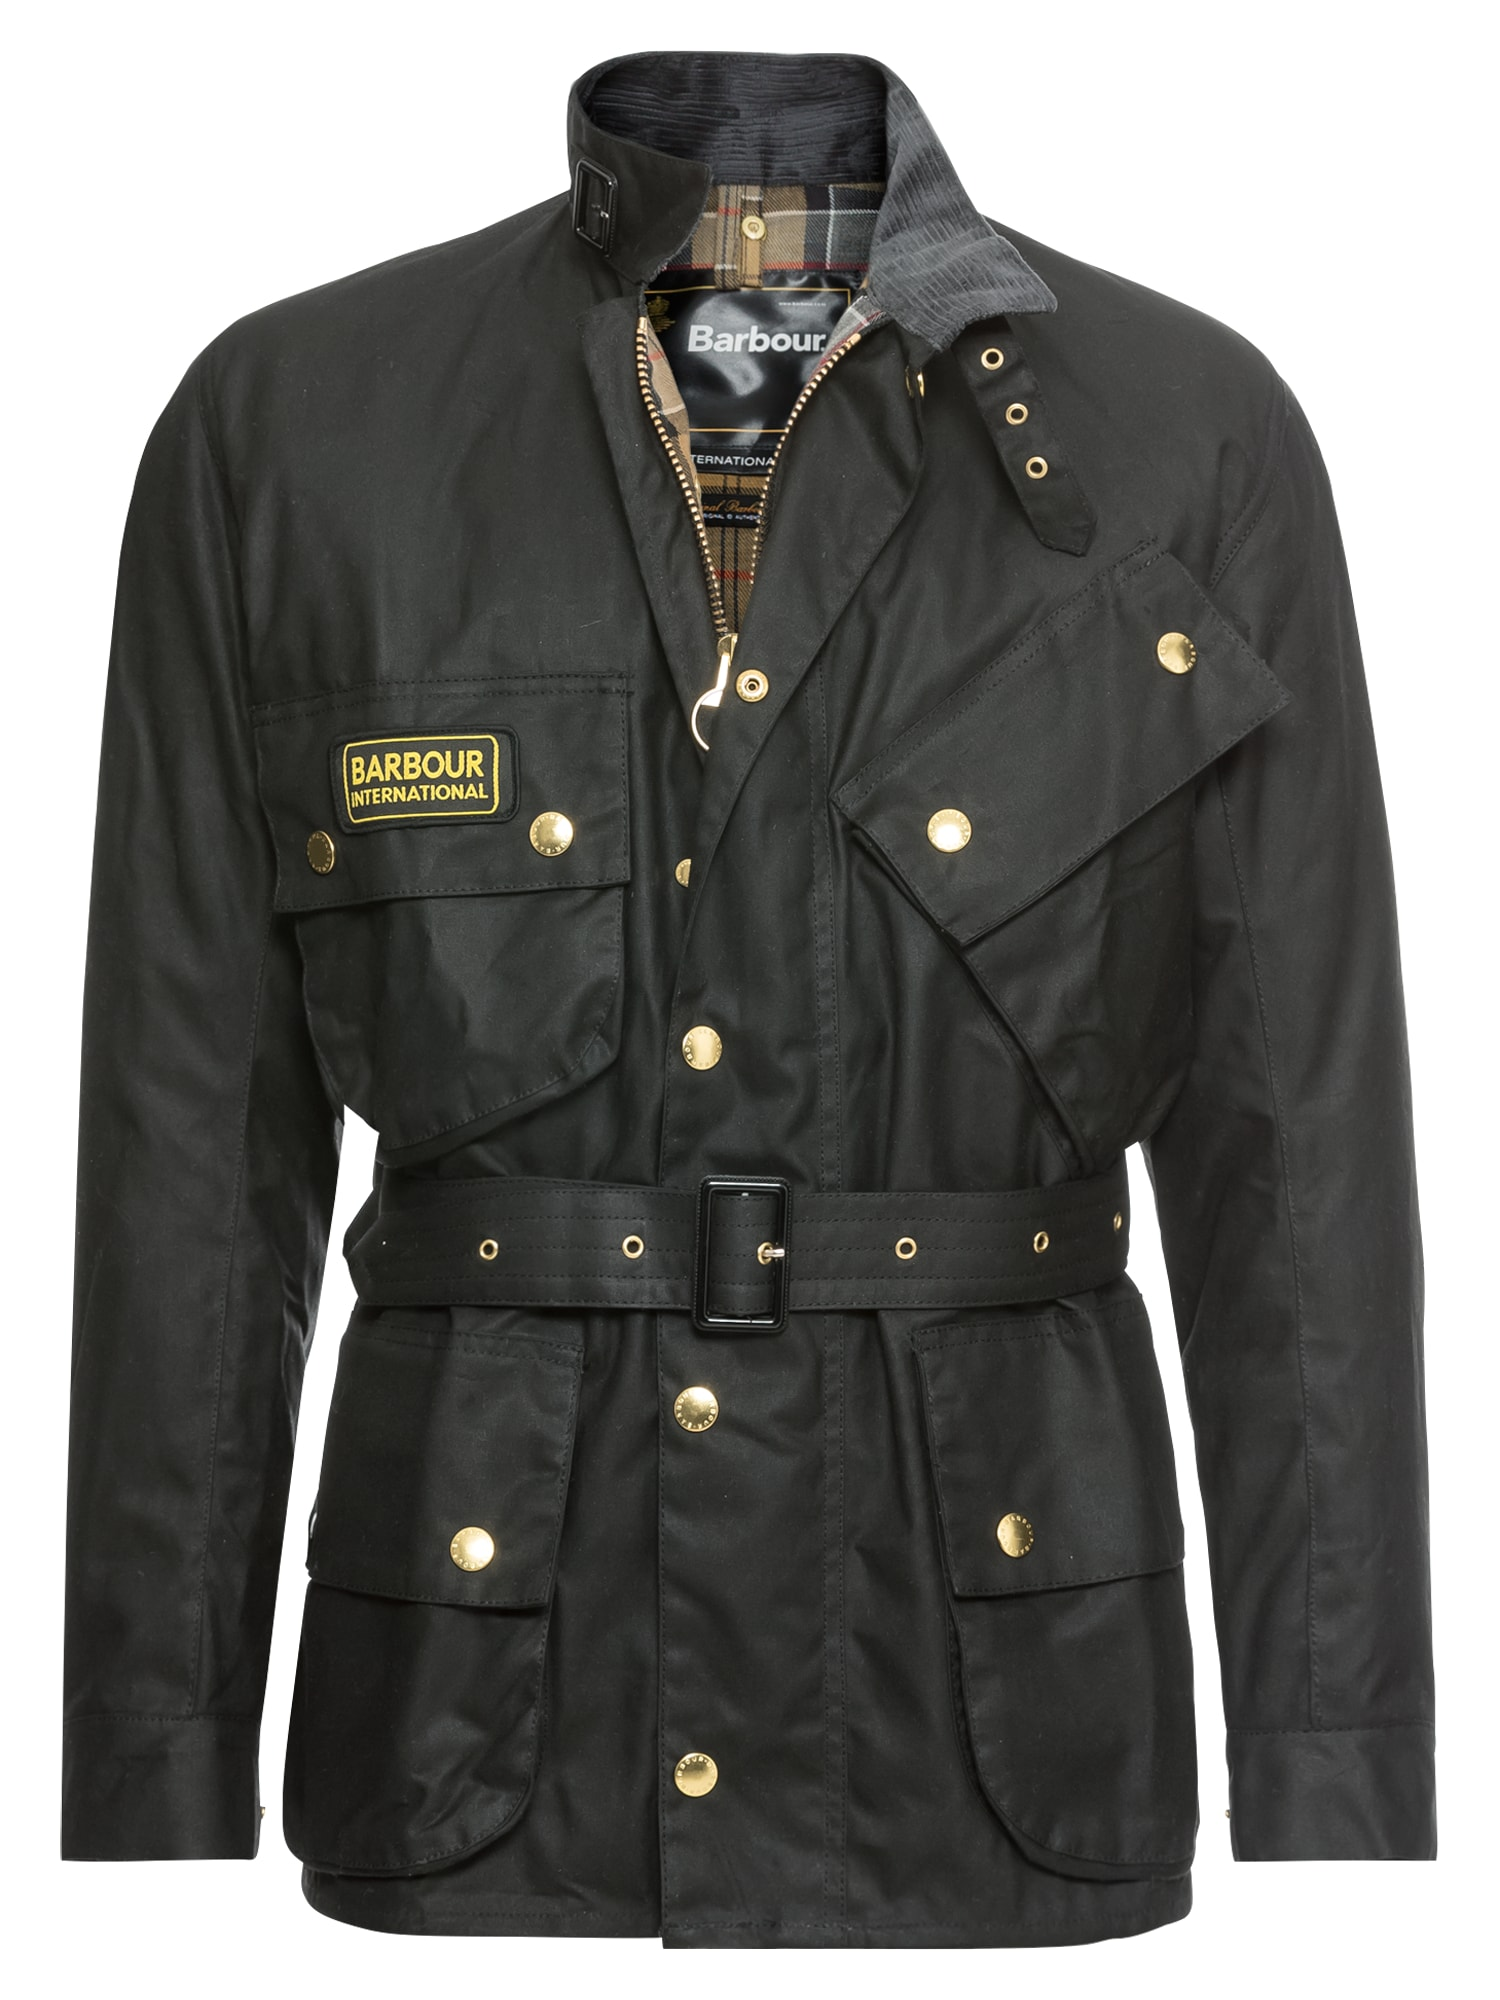 Přechodná bunda B. Intl International Original černá Barbour International